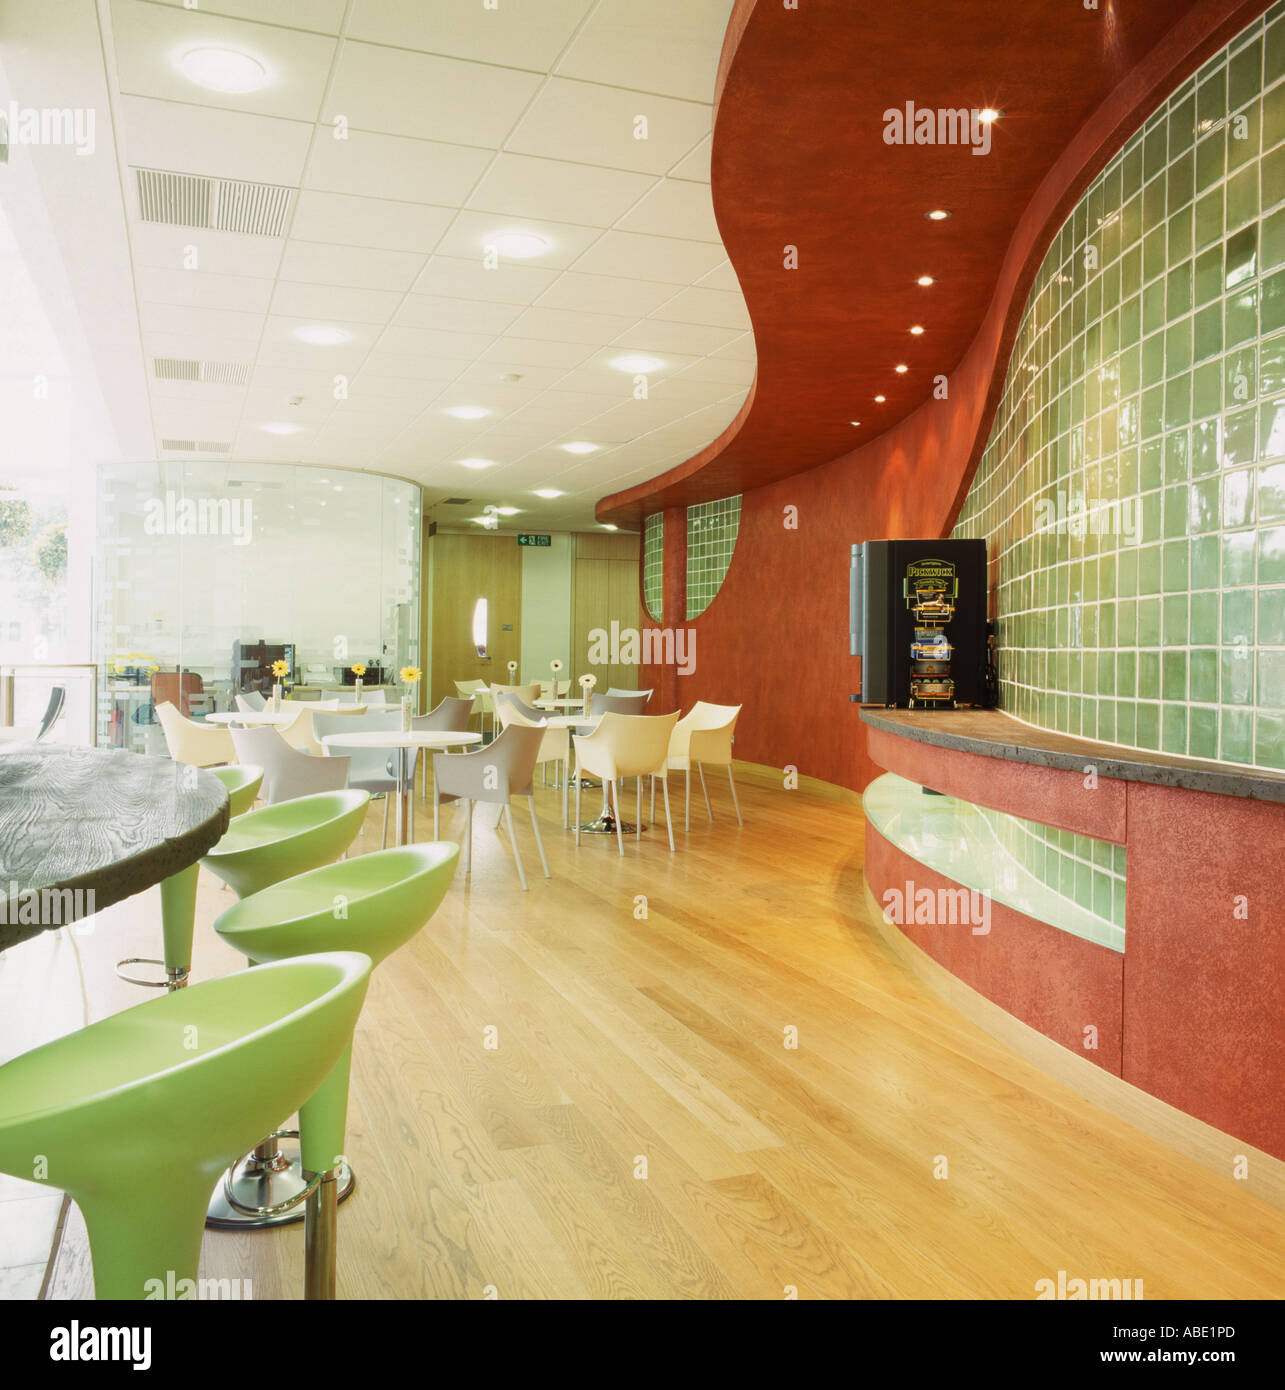 Lime-green Bomba stools at bar in modern white and red restaurant ...